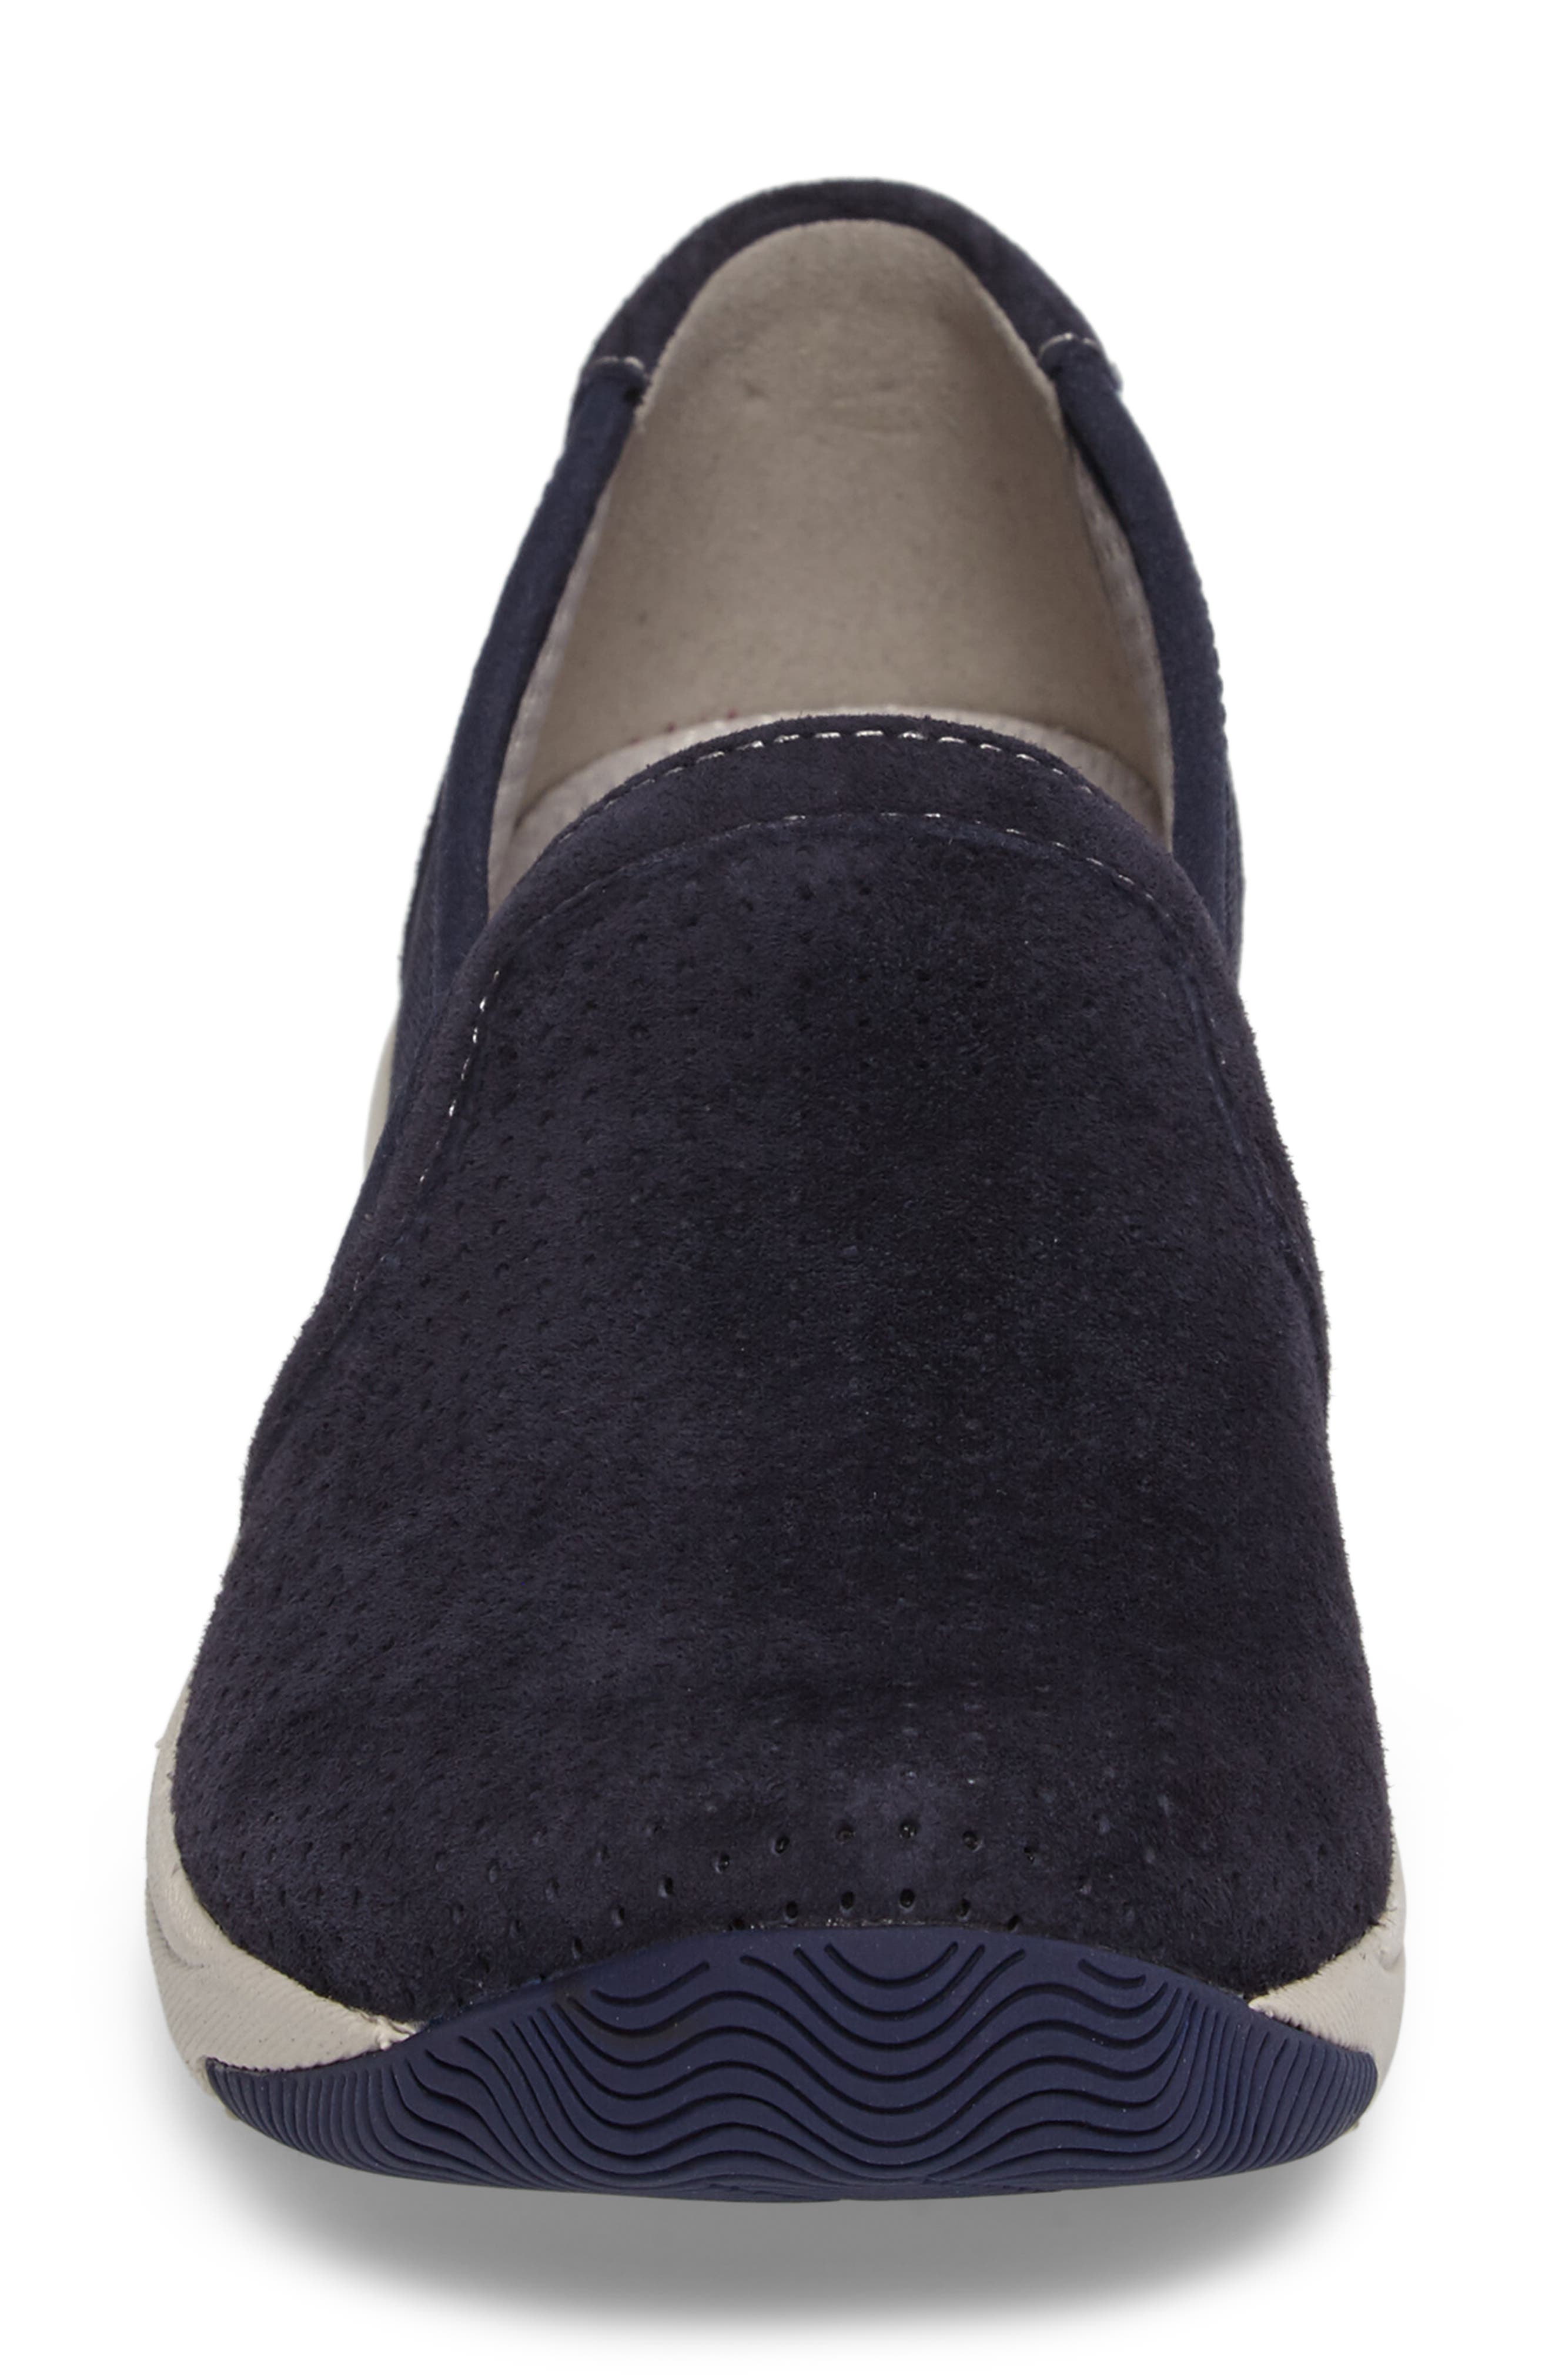 Halifax Collection Halle Slip-On Sneaker,                             Alternate thumbnail 4, color,                             Navy Suede